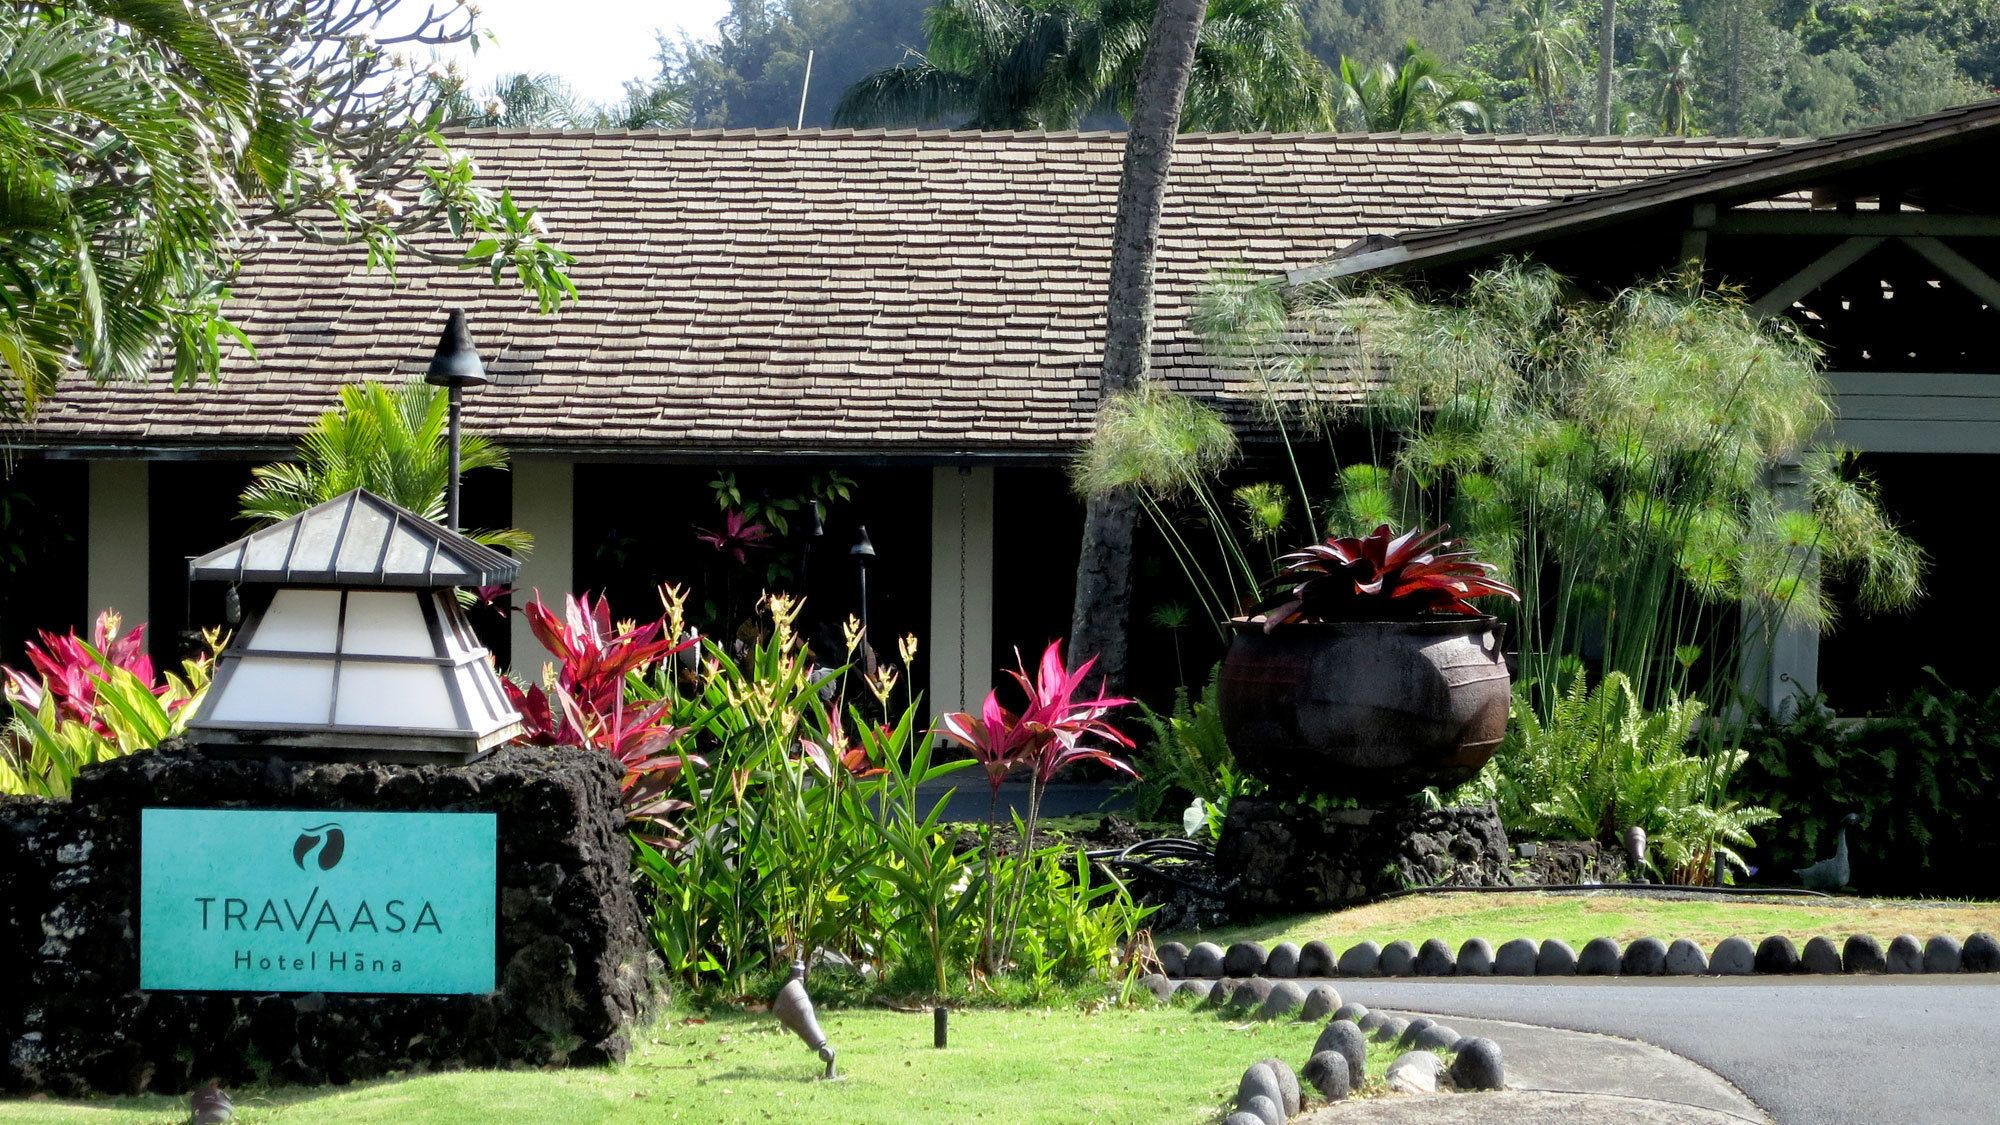 Travaasa sign and building in Maui